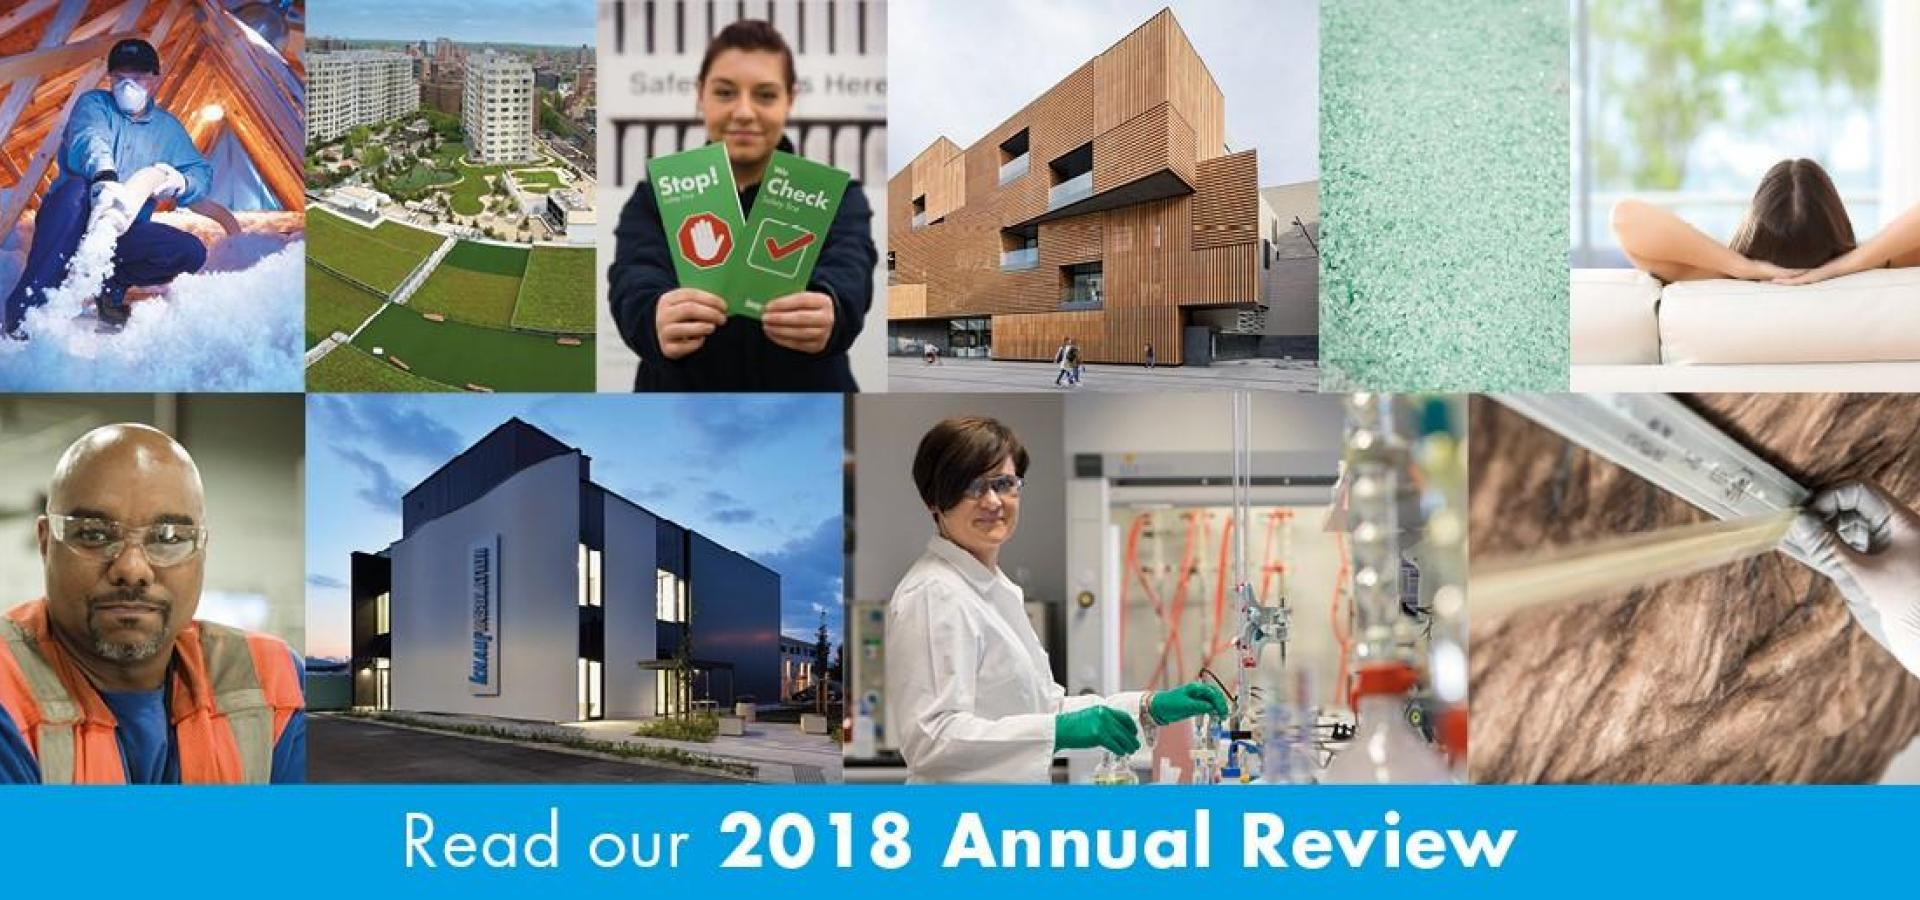 KNAUF INSULATION ANNUAL REVIEW 2018